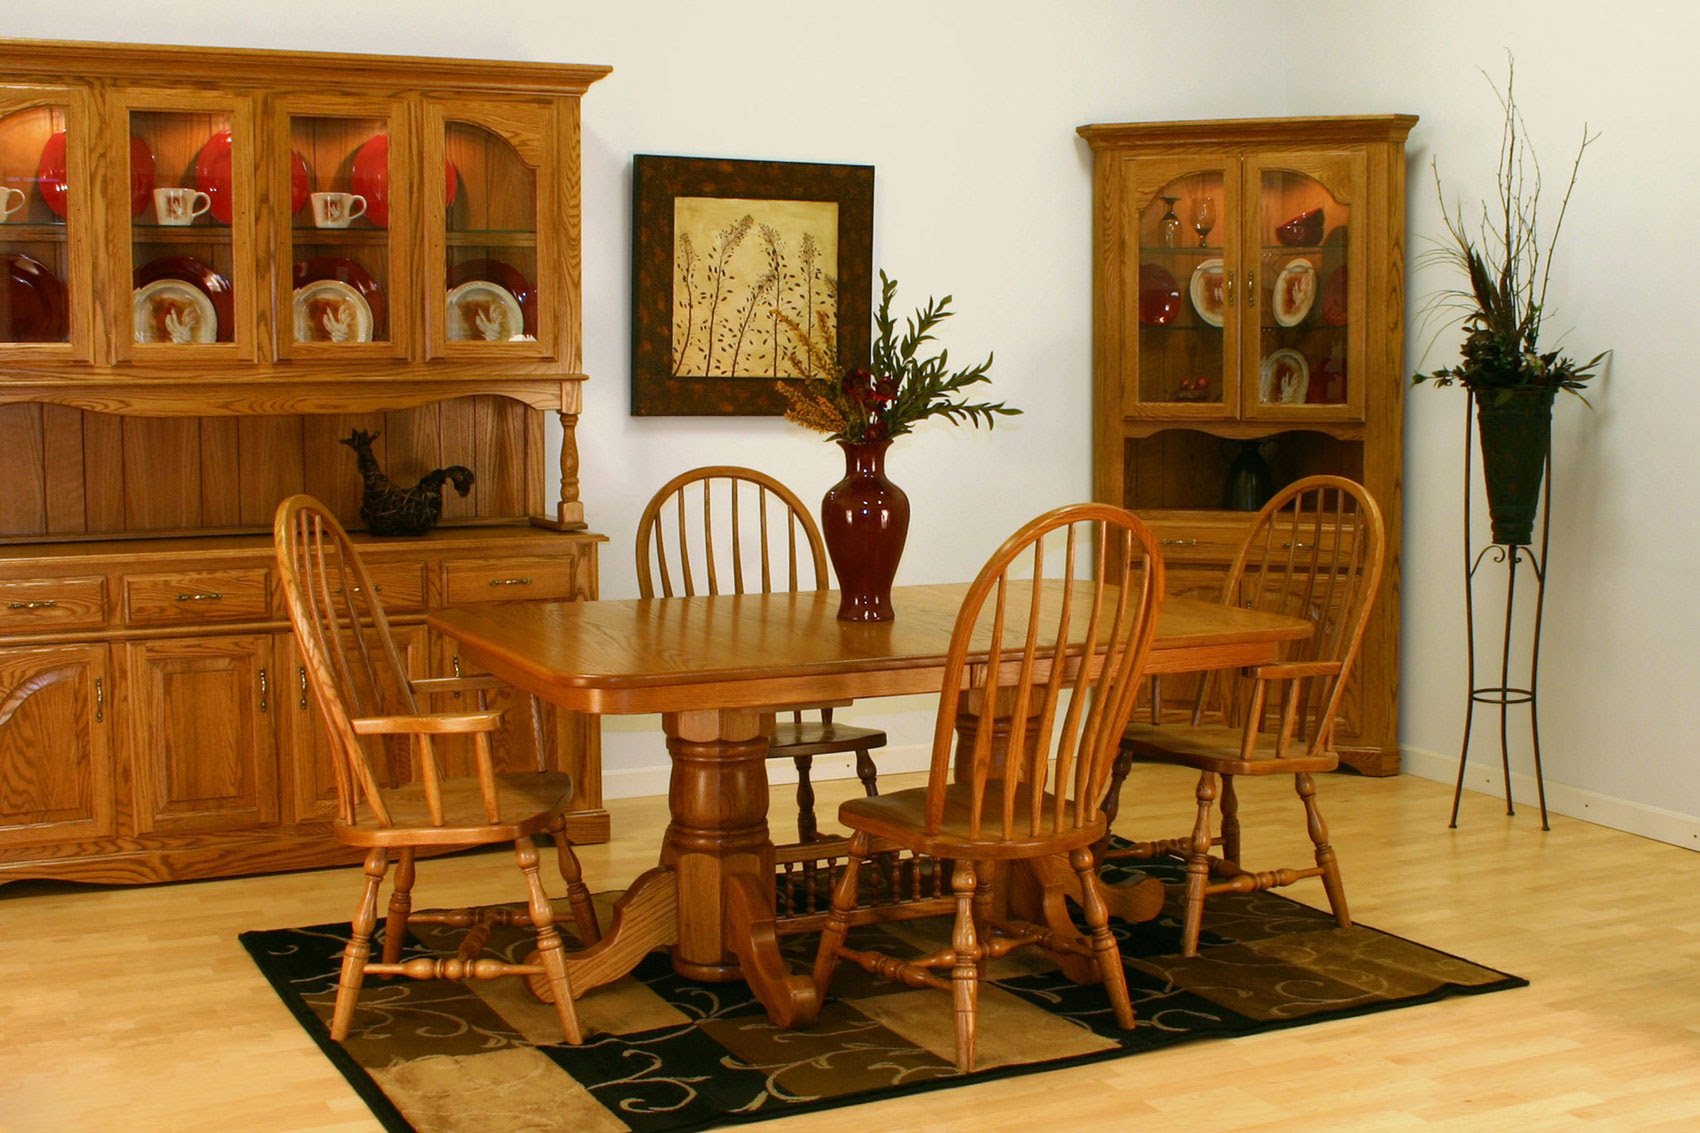 Amish Outlet & Gift Shop Furniture Stores in Rochester, NY - Amish